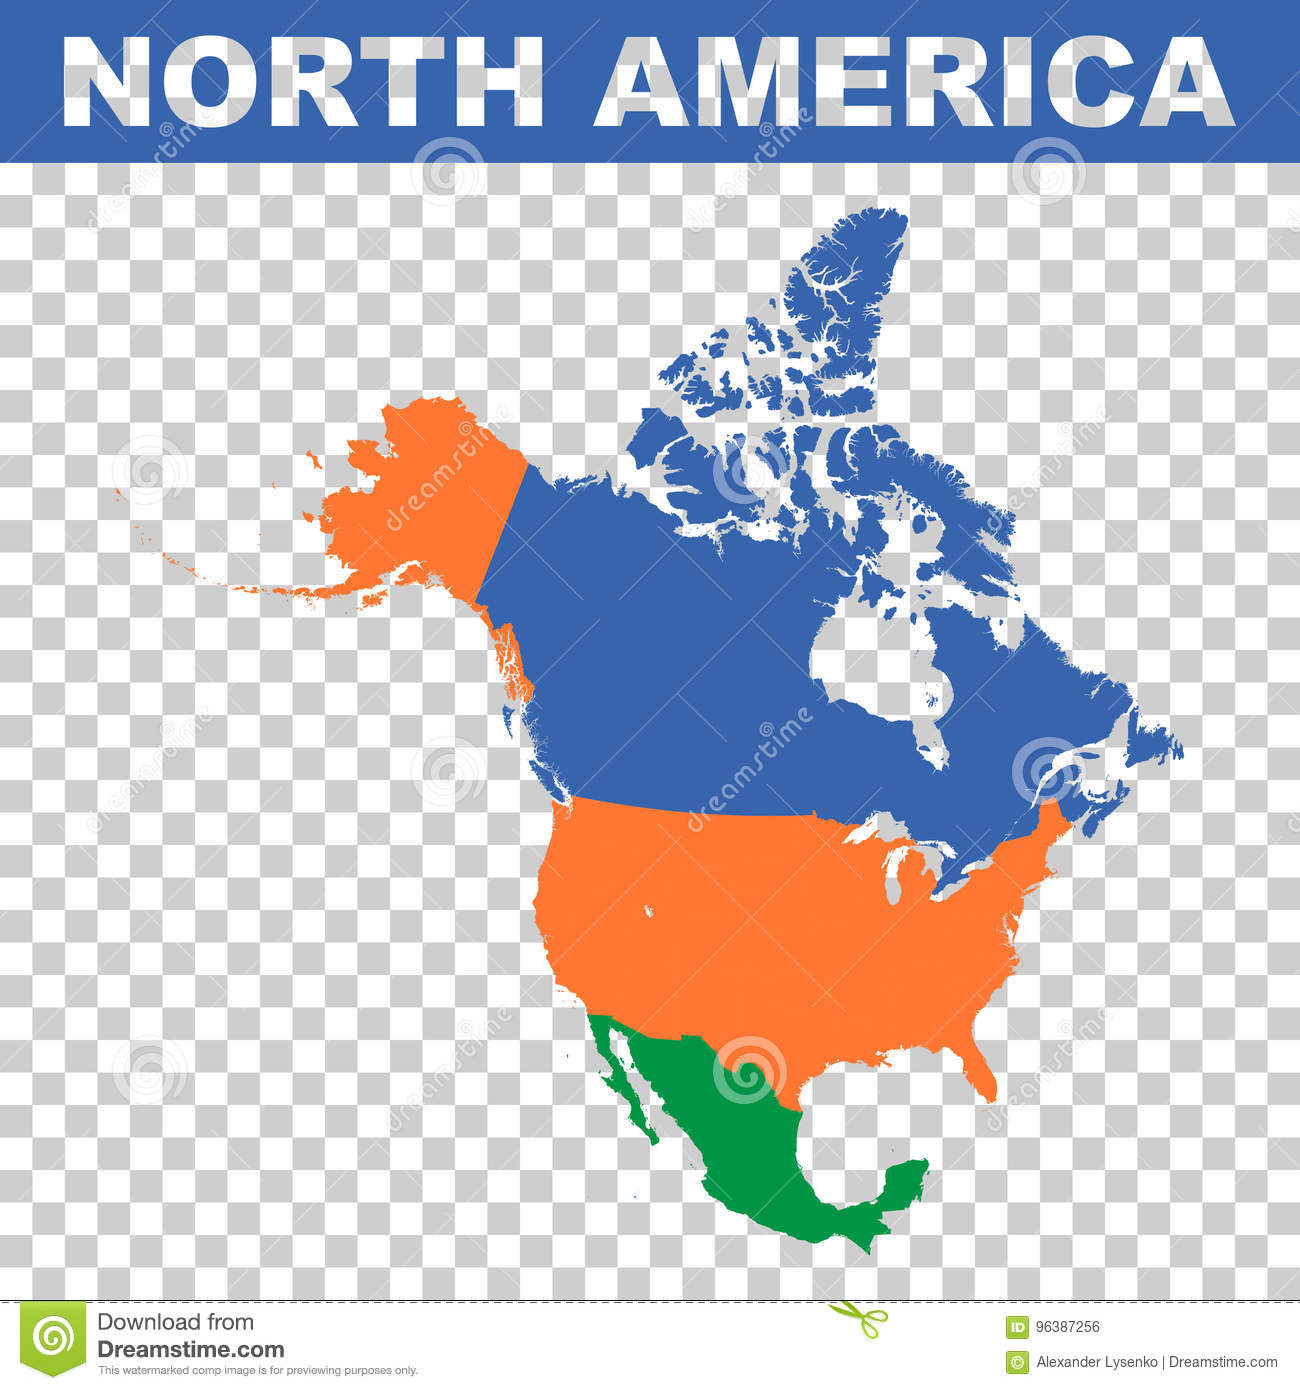 North America Vector Map Stock Vector Illustration Of Texture